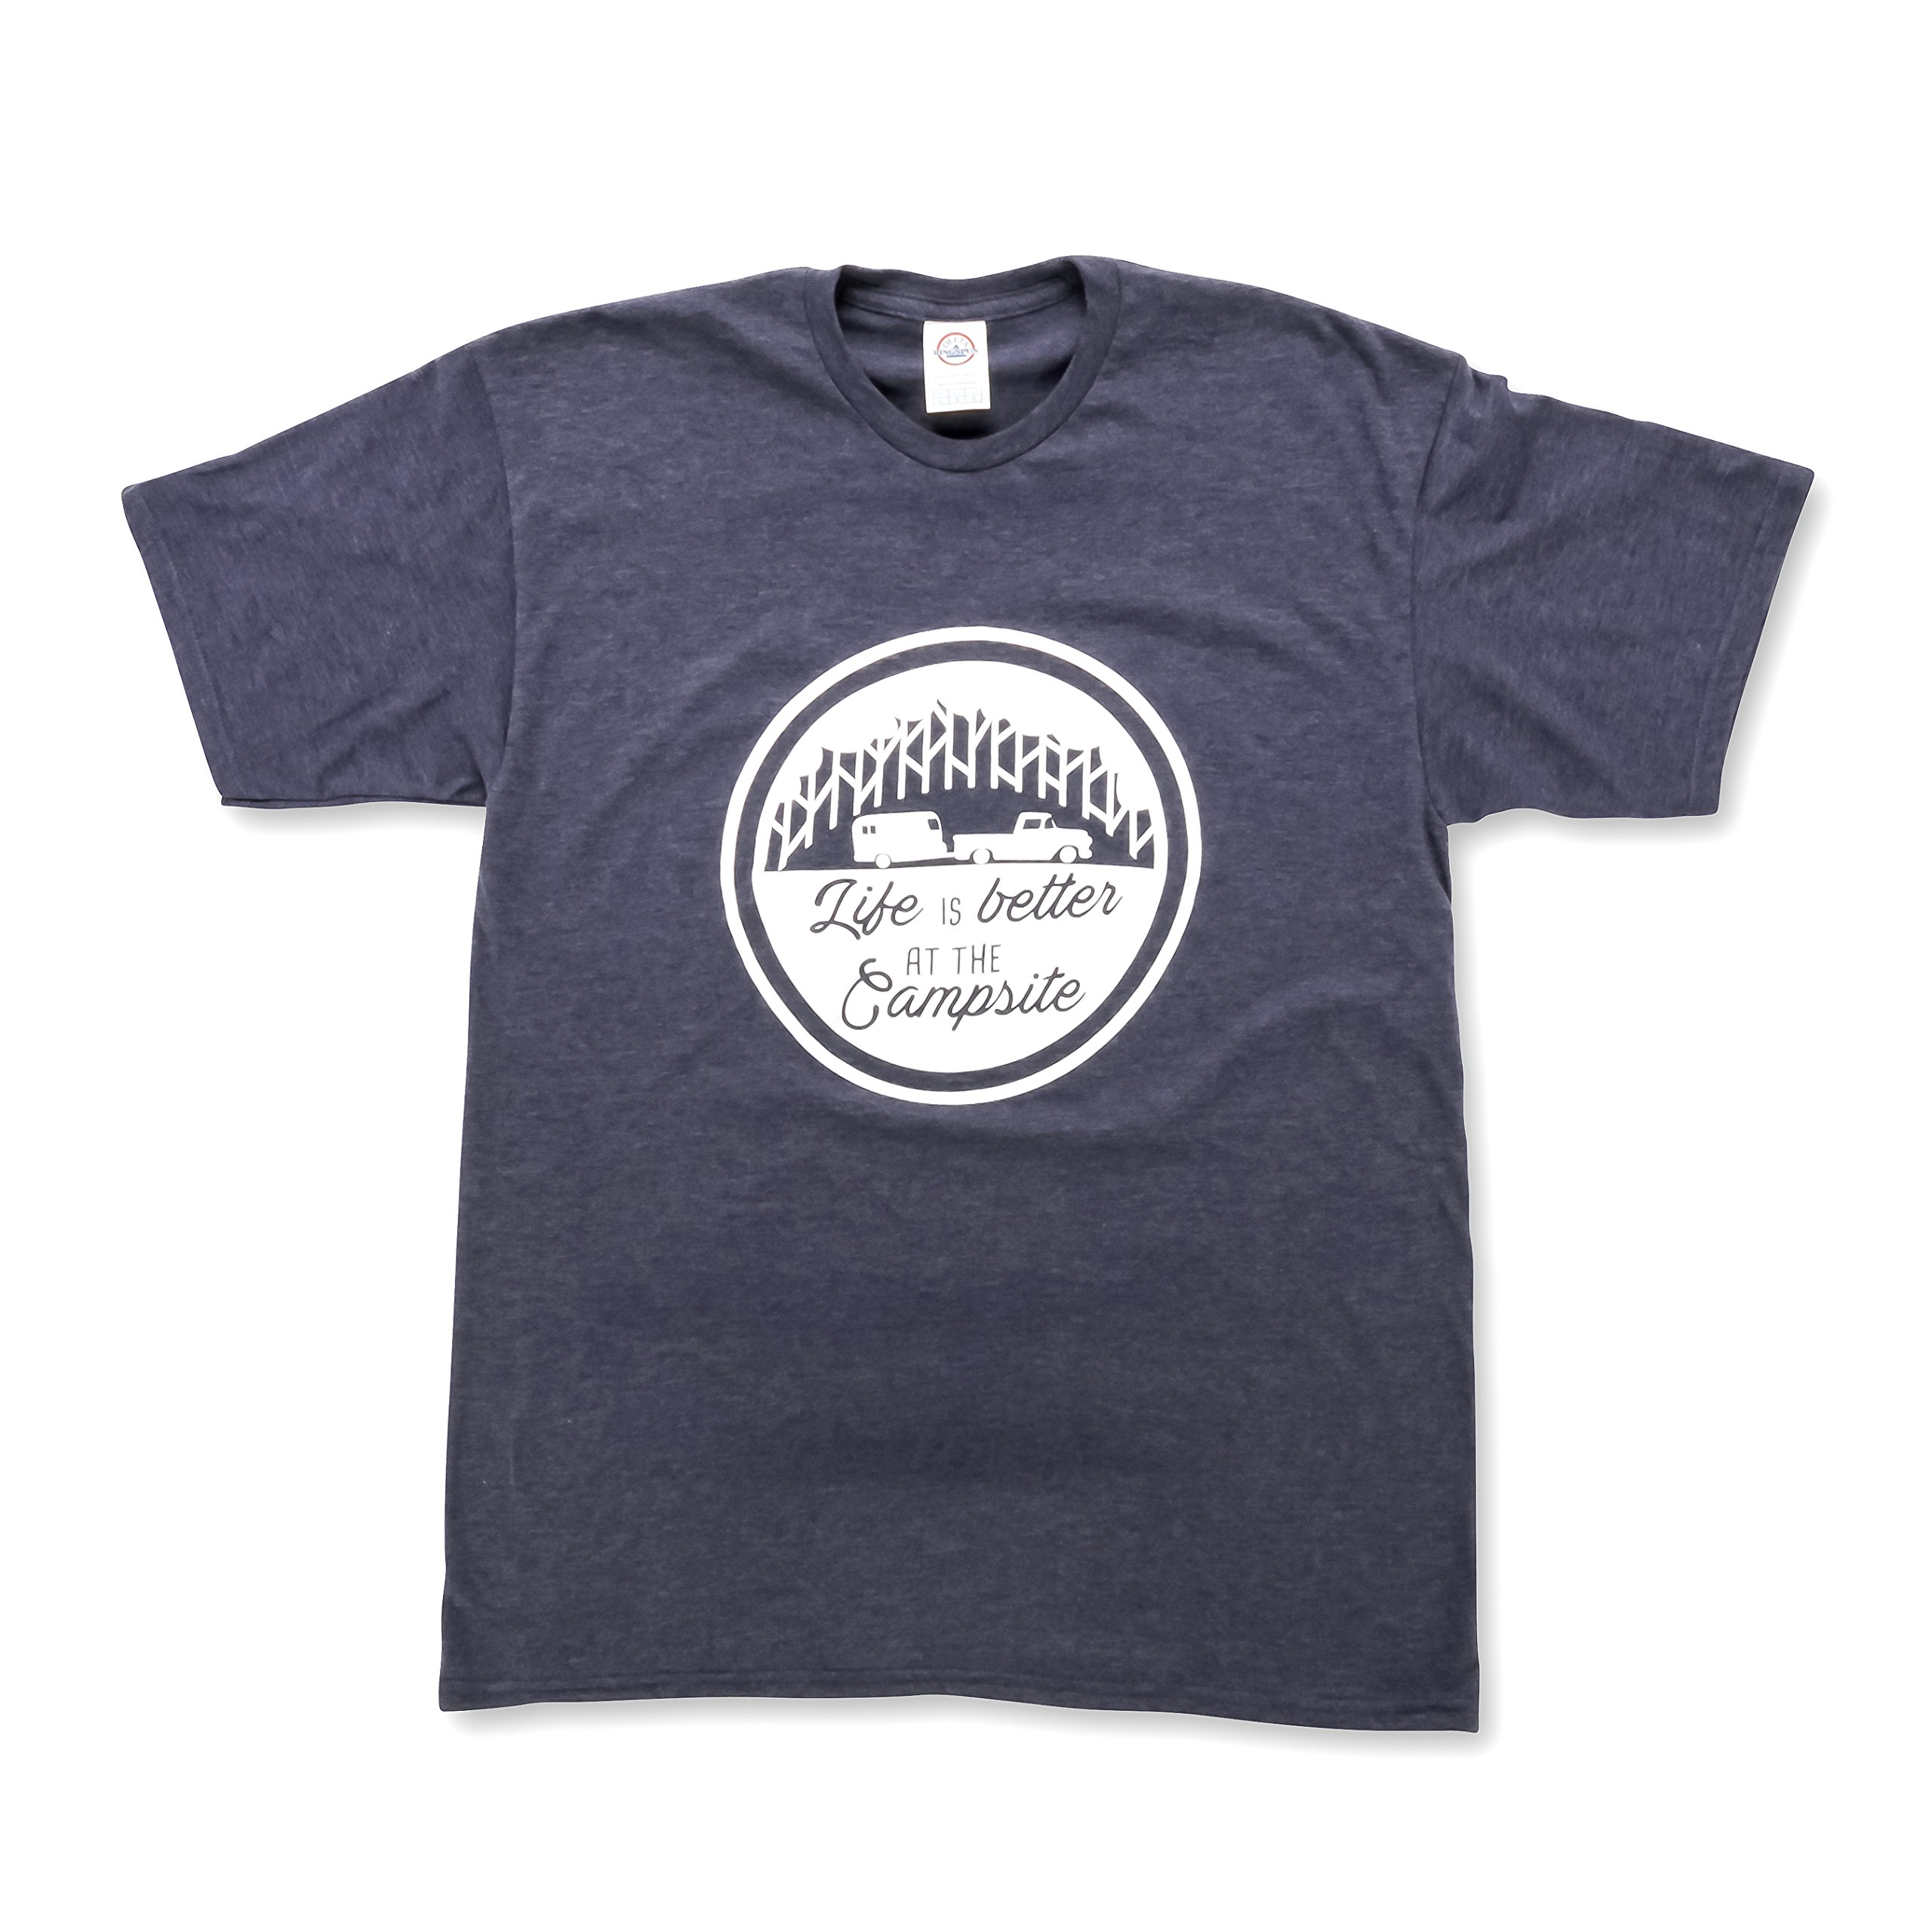 Camco ''Life Is Better At The Campsite'' Crew Neck Short-Sleeve T-Shirt (Navy Blue, X-Large) (53215)